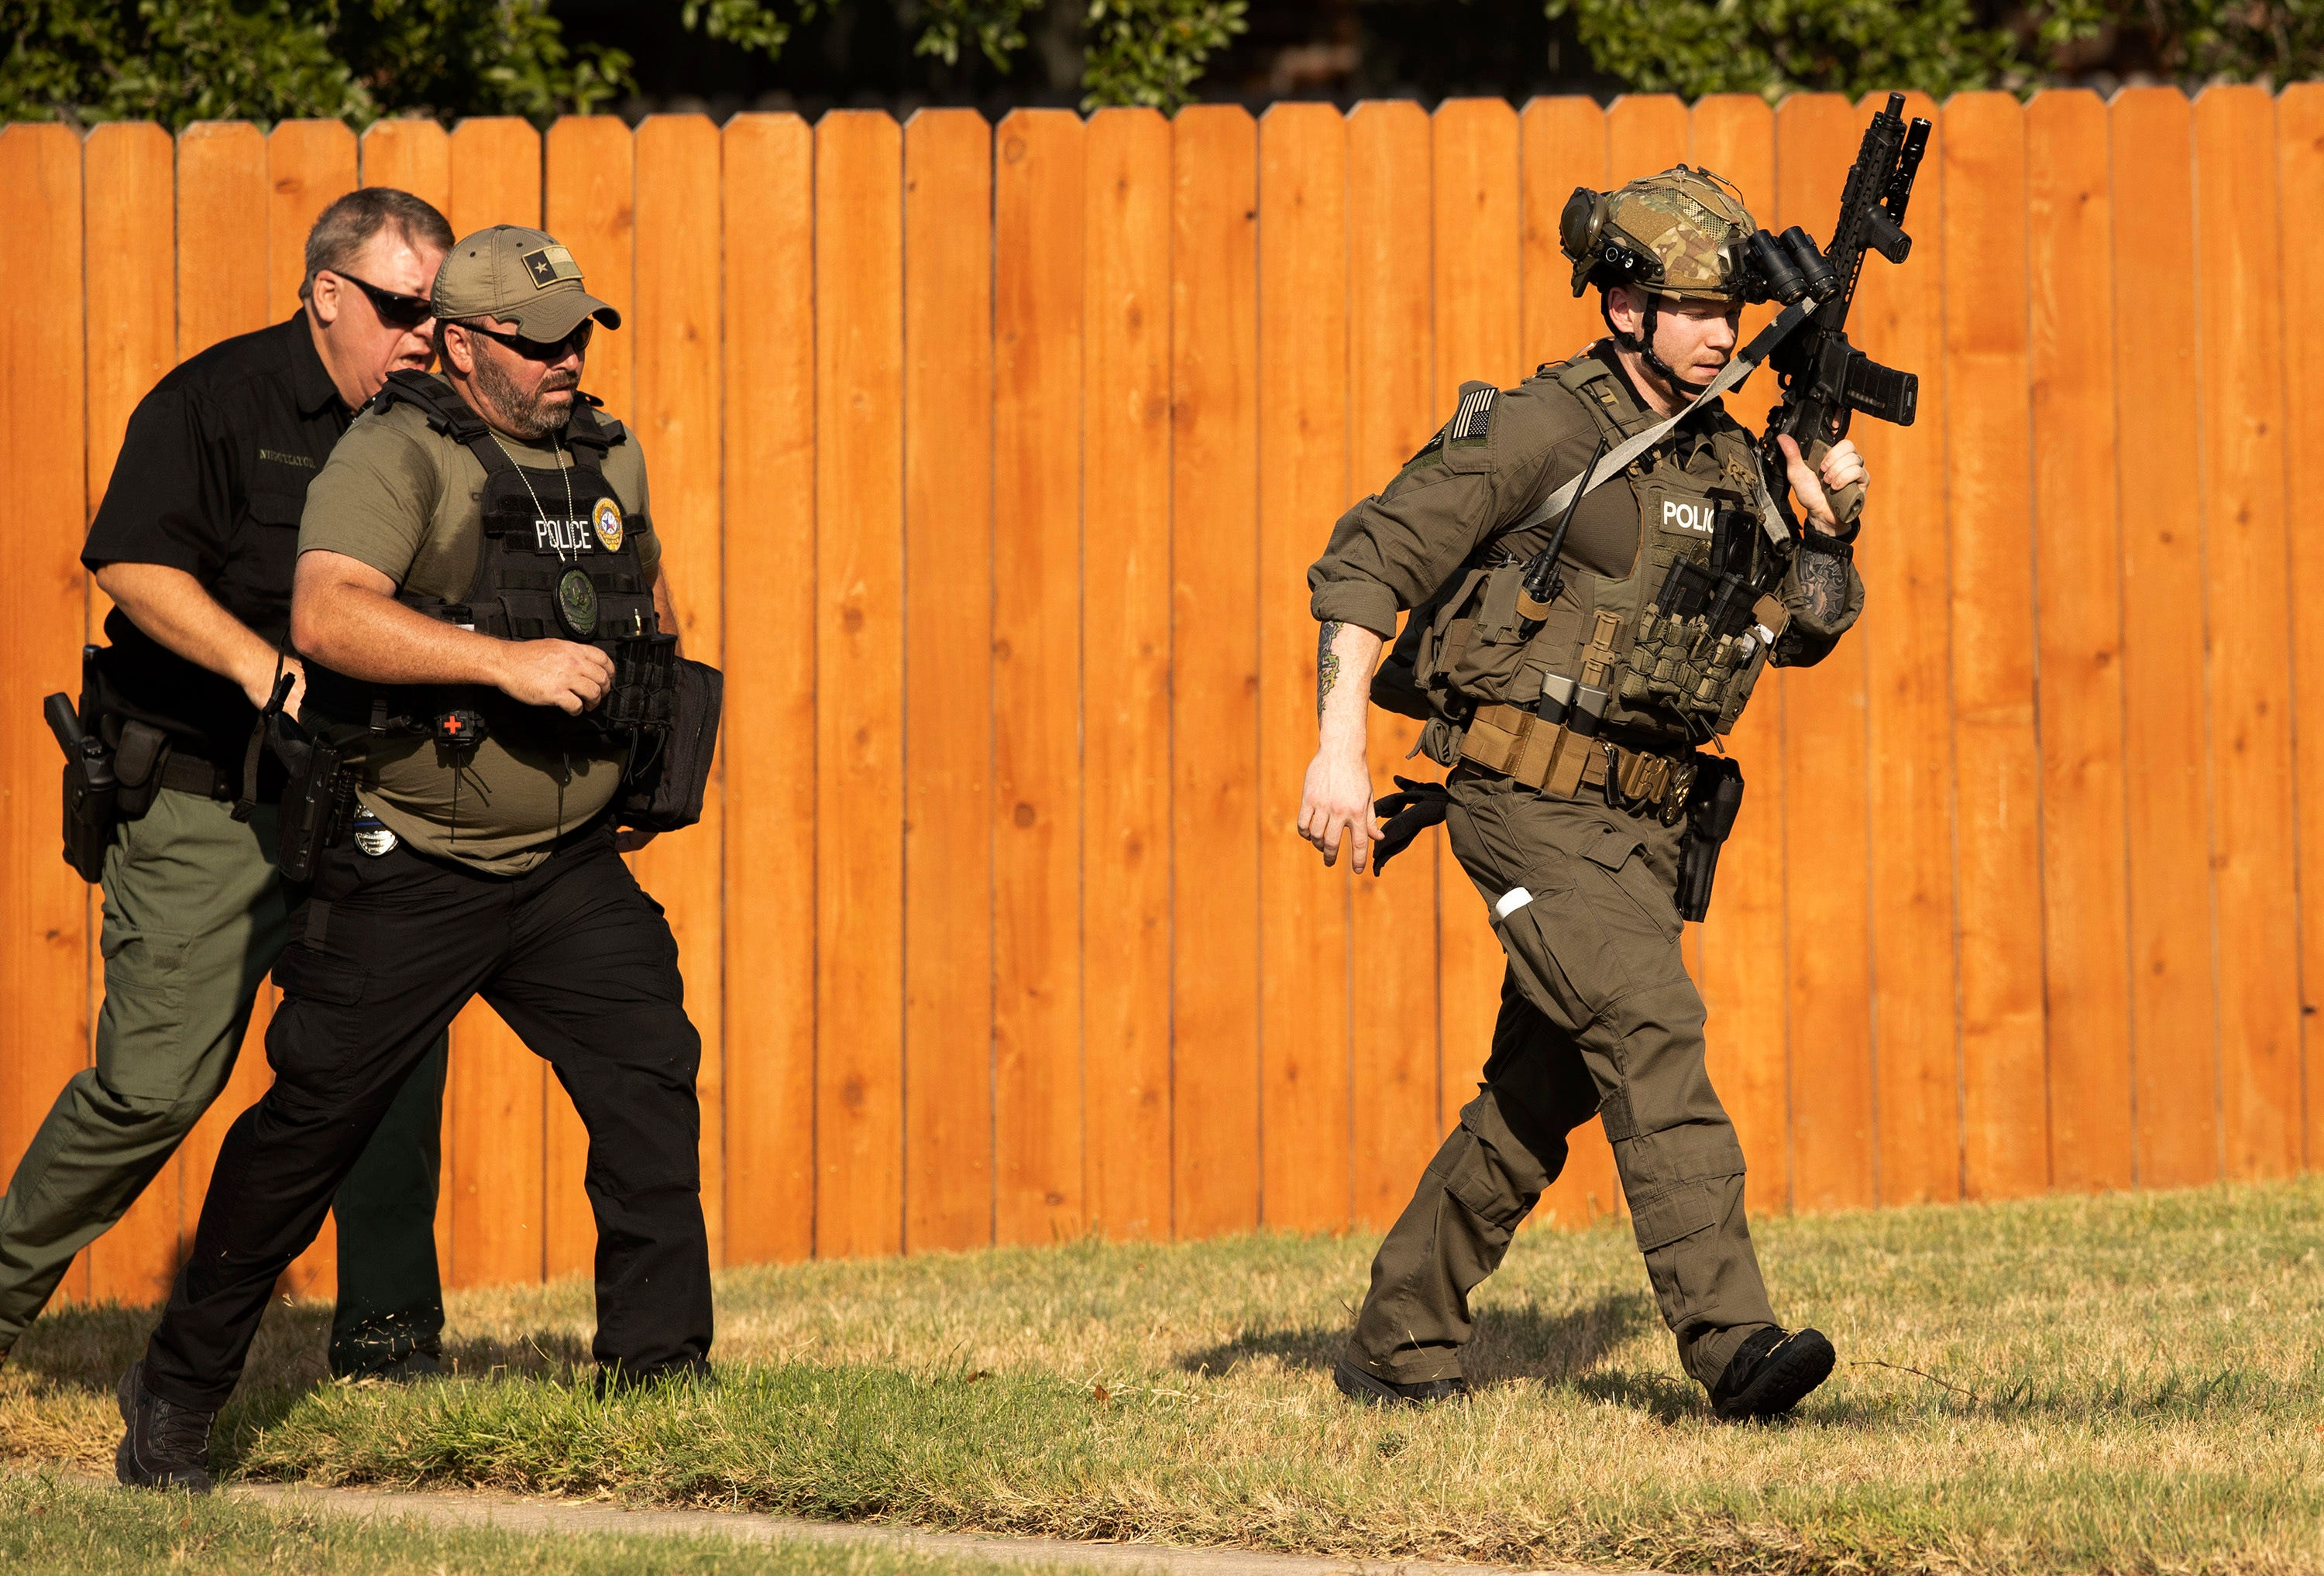 Three Texas Police Officers Shot in Cedar Park Neighborhood; Suspect 'Barricaded' Inside Home